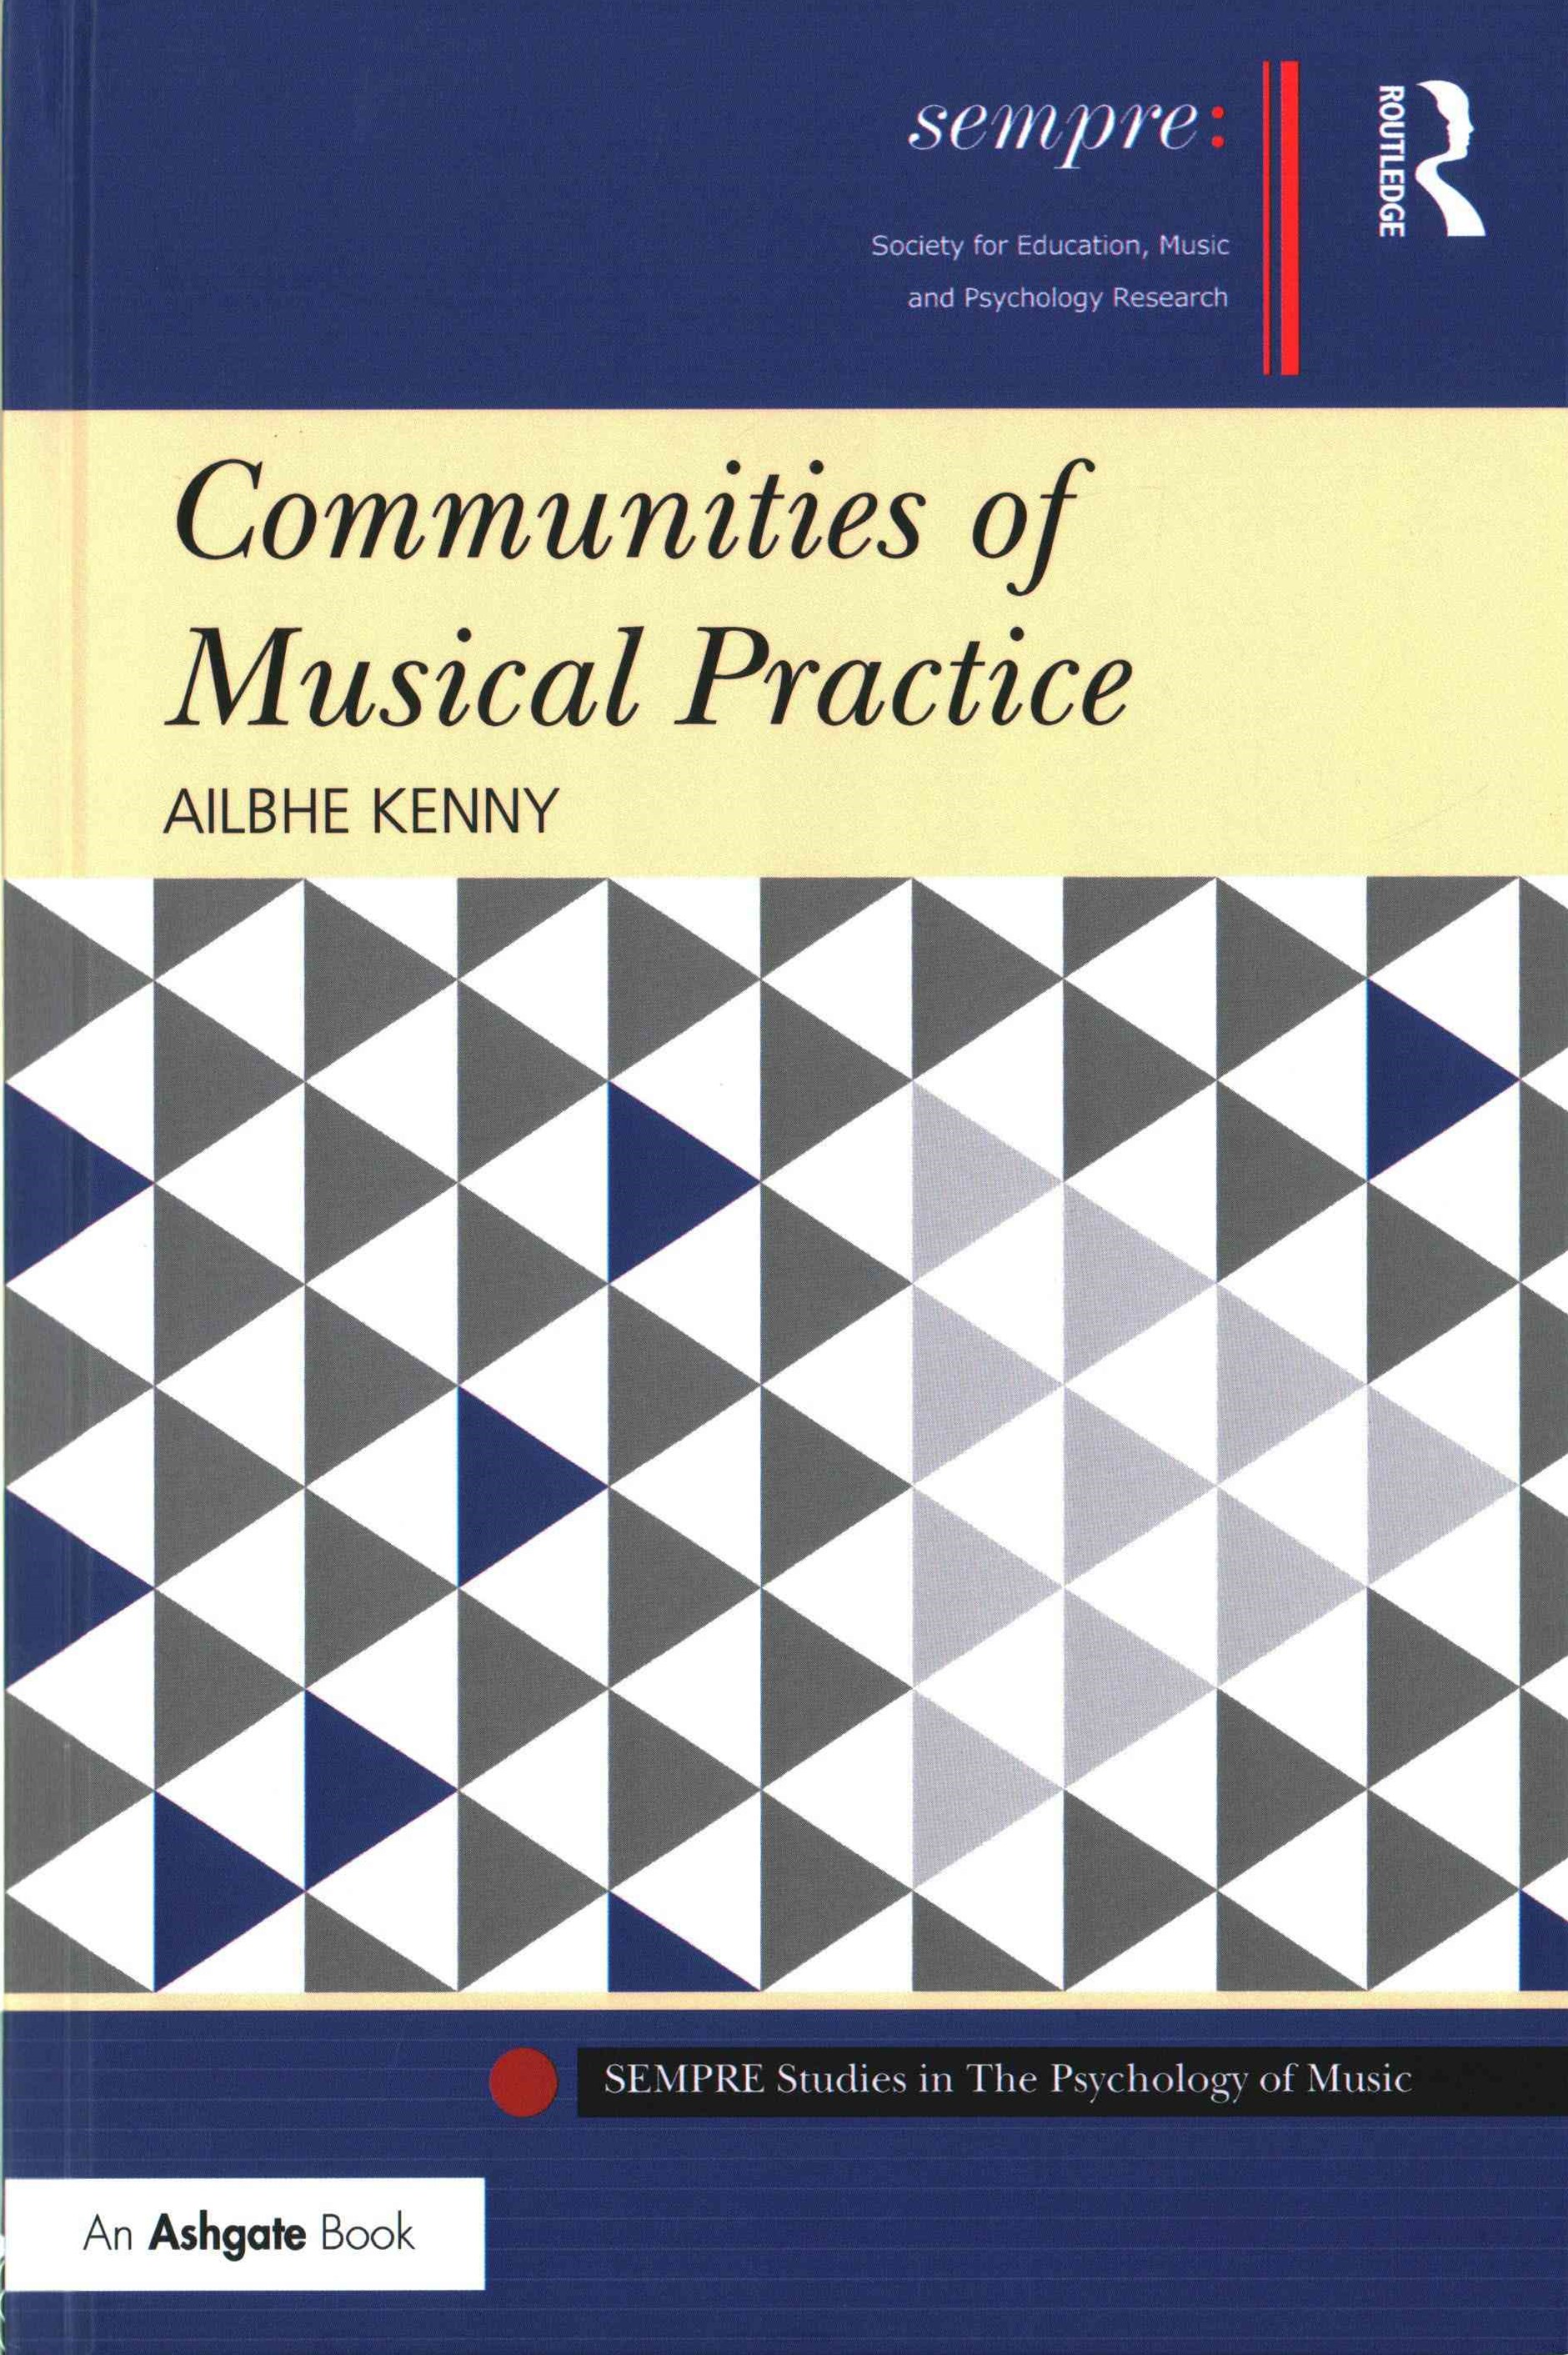 Communities of Musical Practice